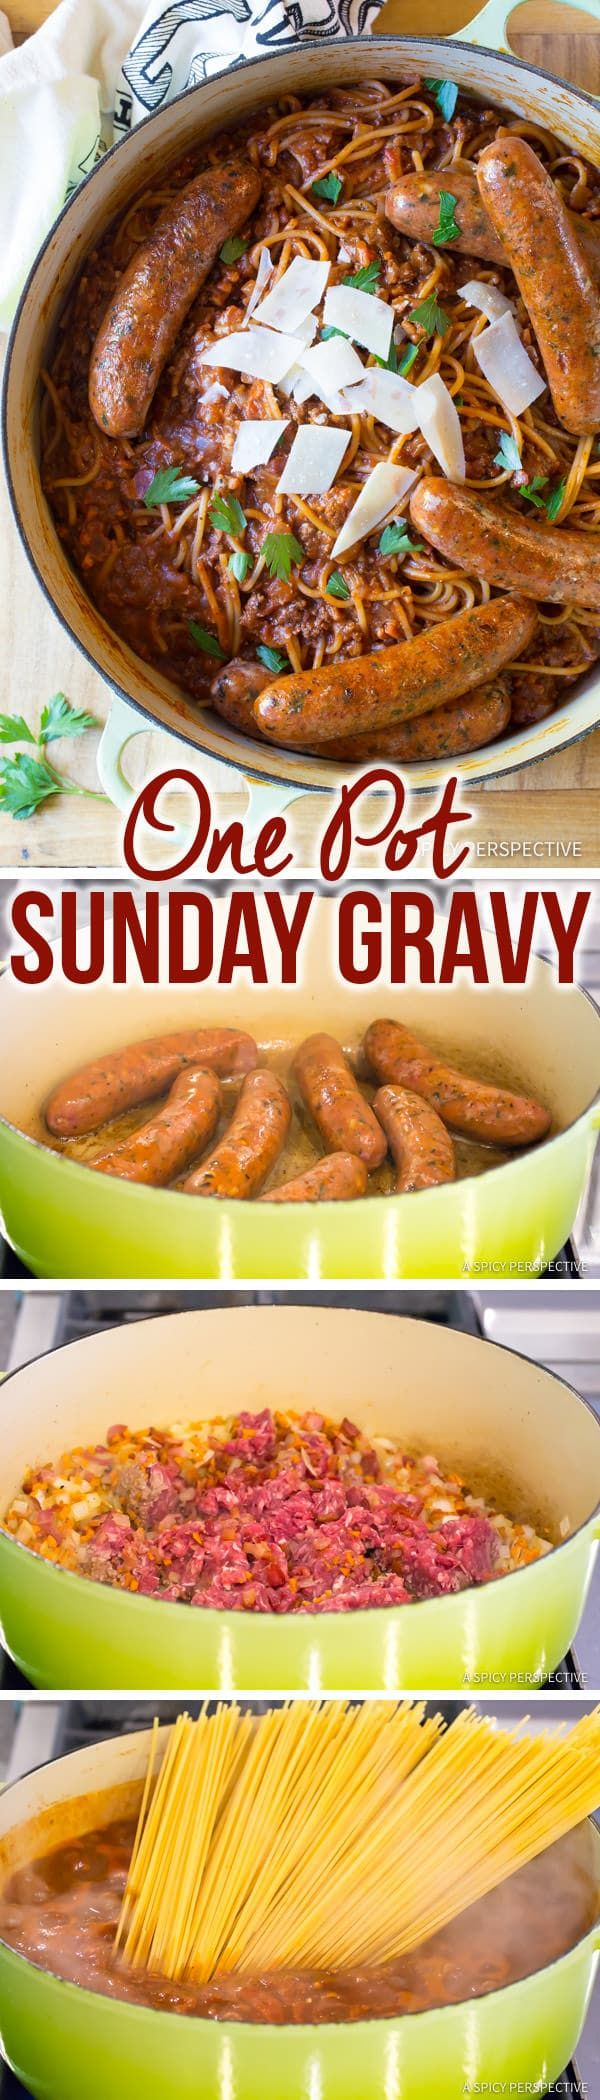 Perfect One Pot Sunday Gravy (In Less Than An Hour!) | ASpicyPerspective.com Served with #NewYorkBakeryCo Bake&Break Garlic Bread! #BakedProud